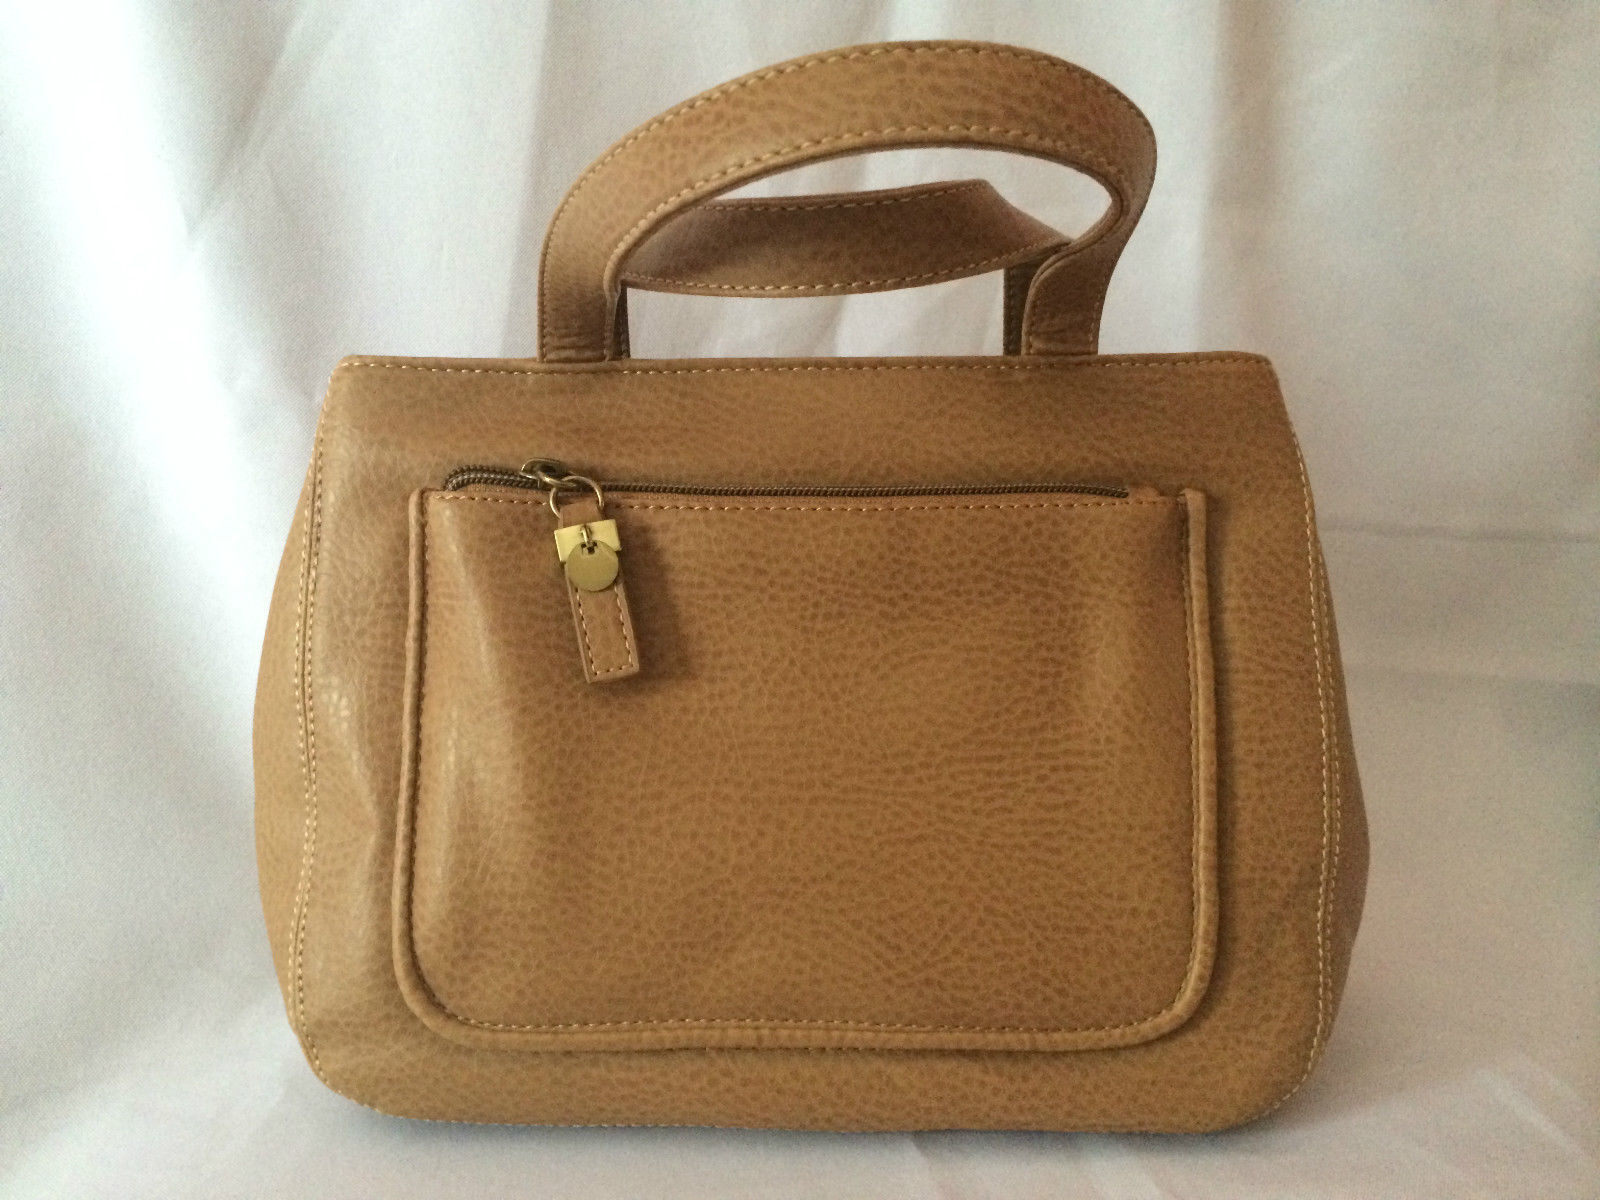 RELIC Brand Quality Brown Leather Bag with Detachable Shoulder Strap NEW! 381bdf9a4886f